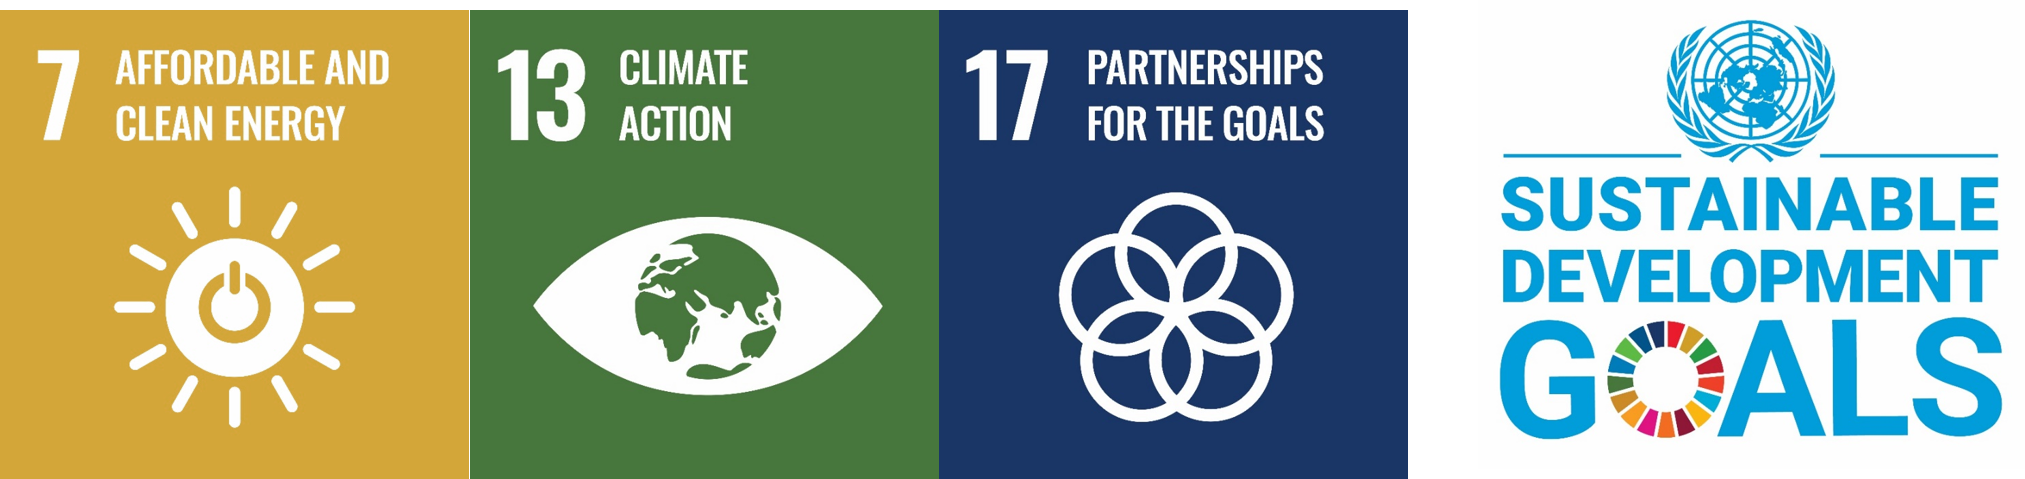 WindFlag contributes to SDGs